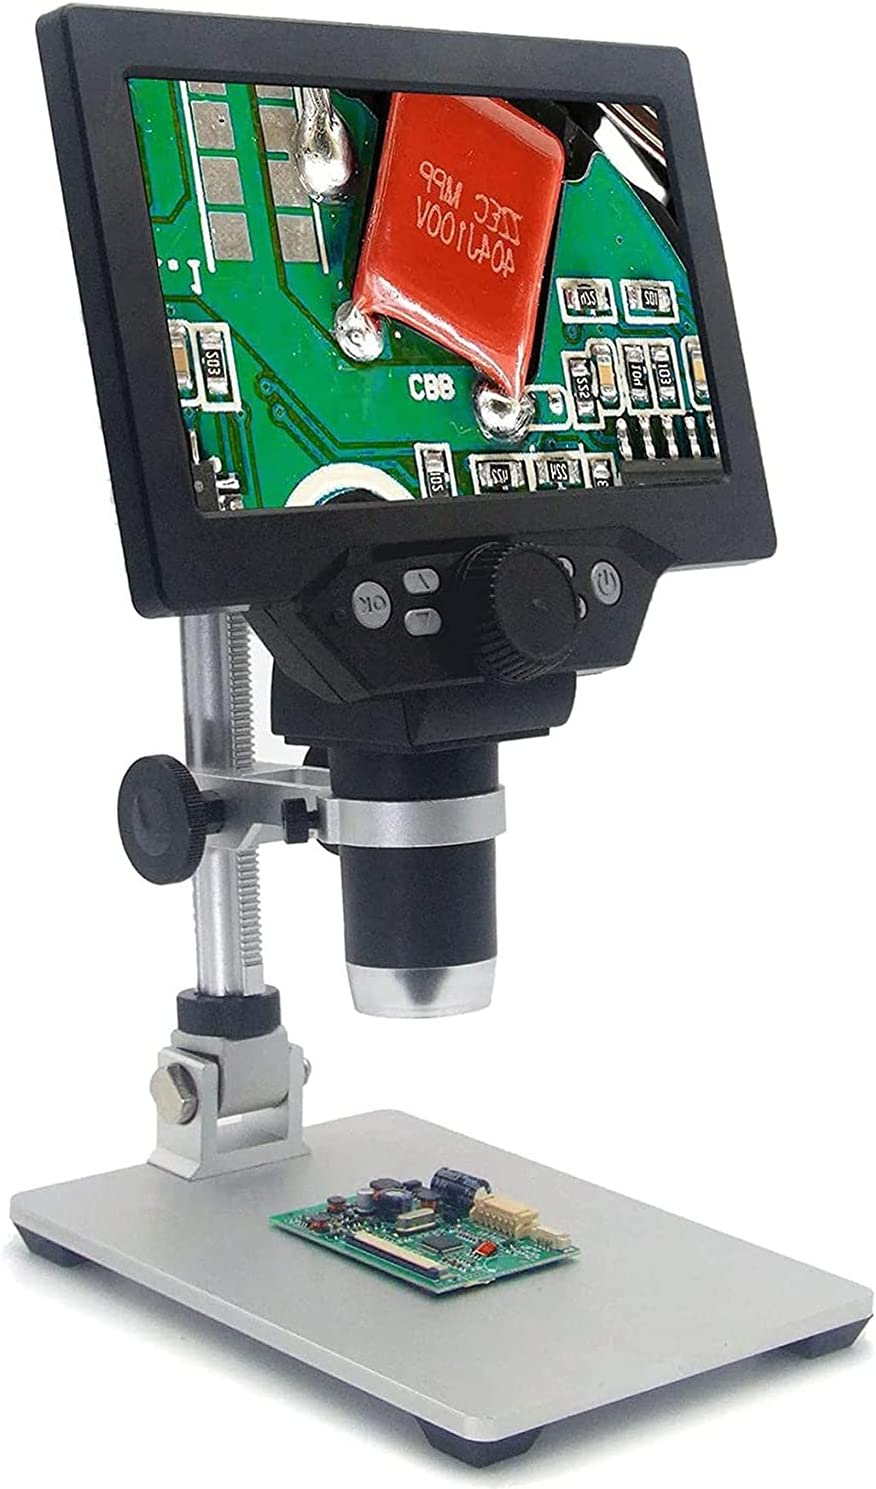 OFFicial site Digital Microscope with New color Aluminum Alloy 1-1200X Stand 7 12MP Inch